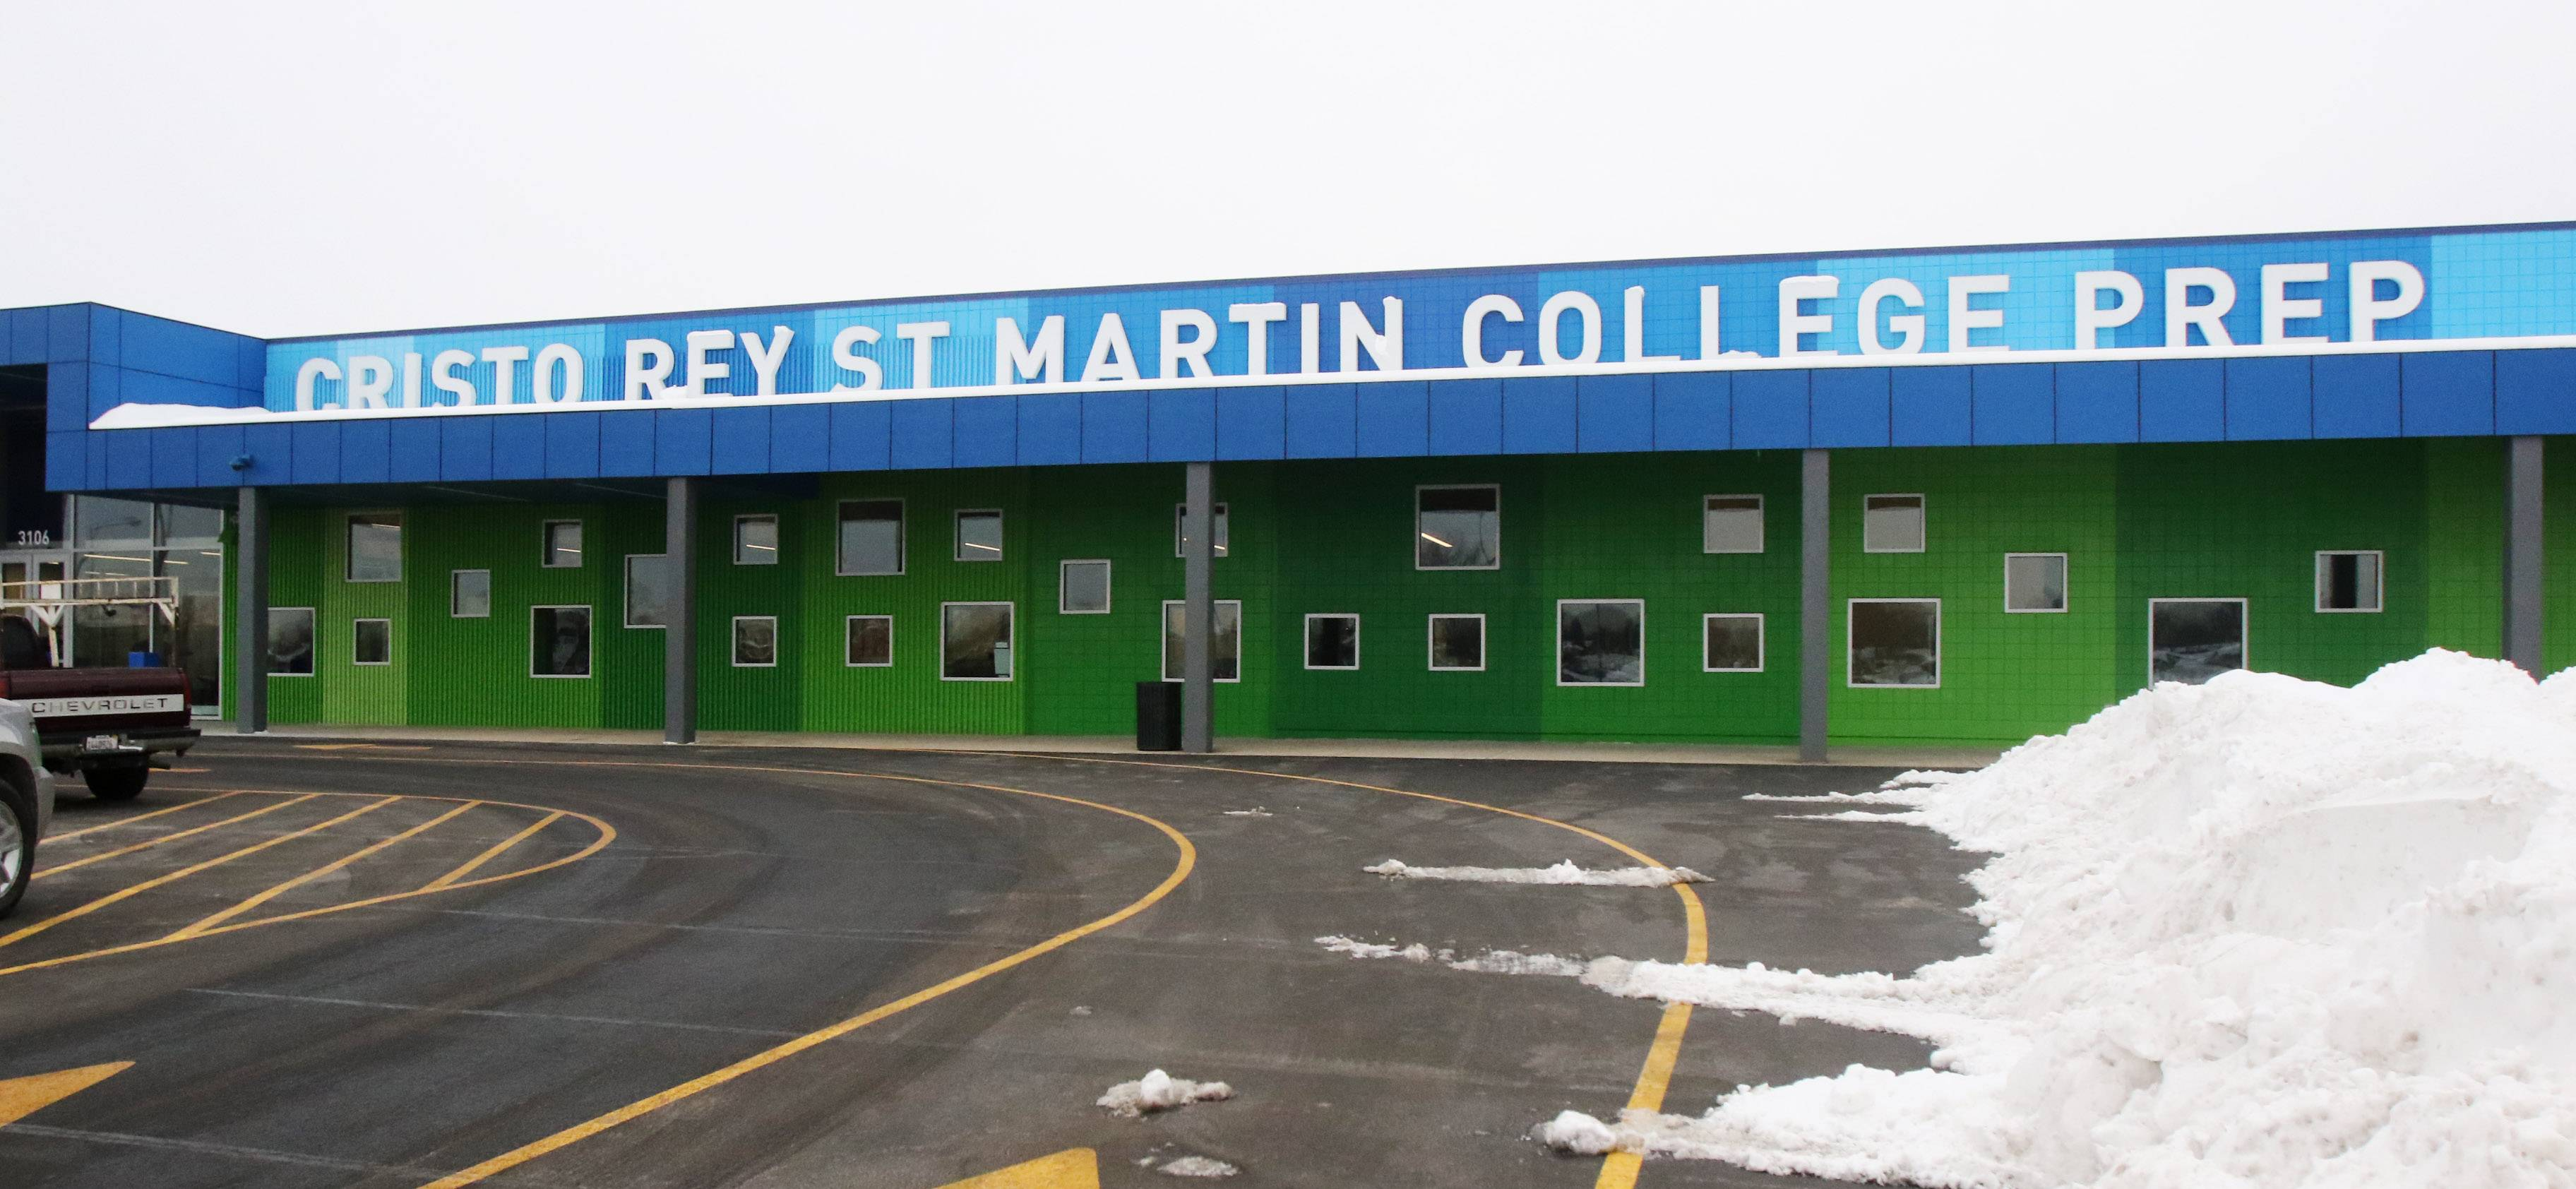 Tuesday marked the first day of classes at Cristo Rey St. Martin College Prep new home in Waukegan. The building was transformed from a vacant Kmart big box store.